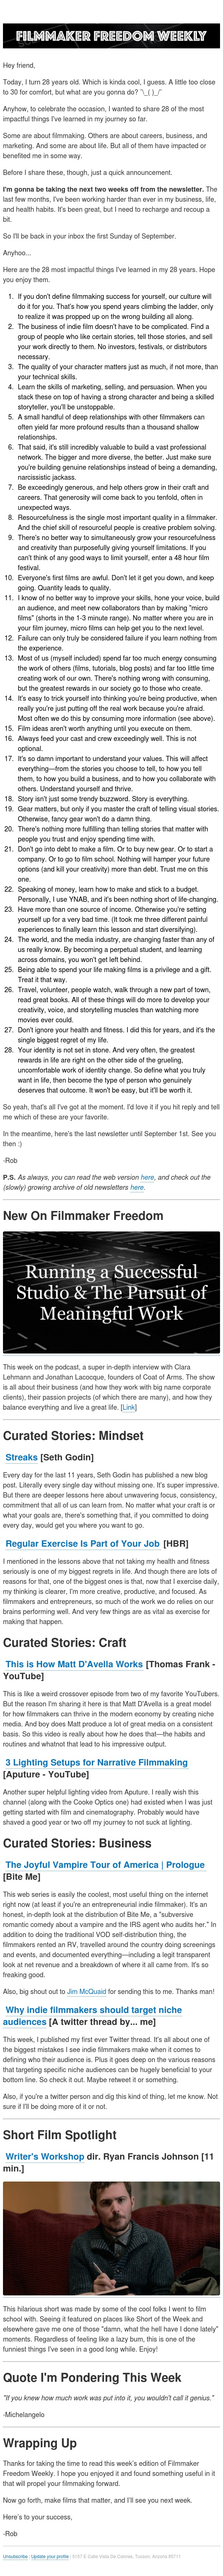 [Newsletter] 28 lessons in filmmaking, business, and life